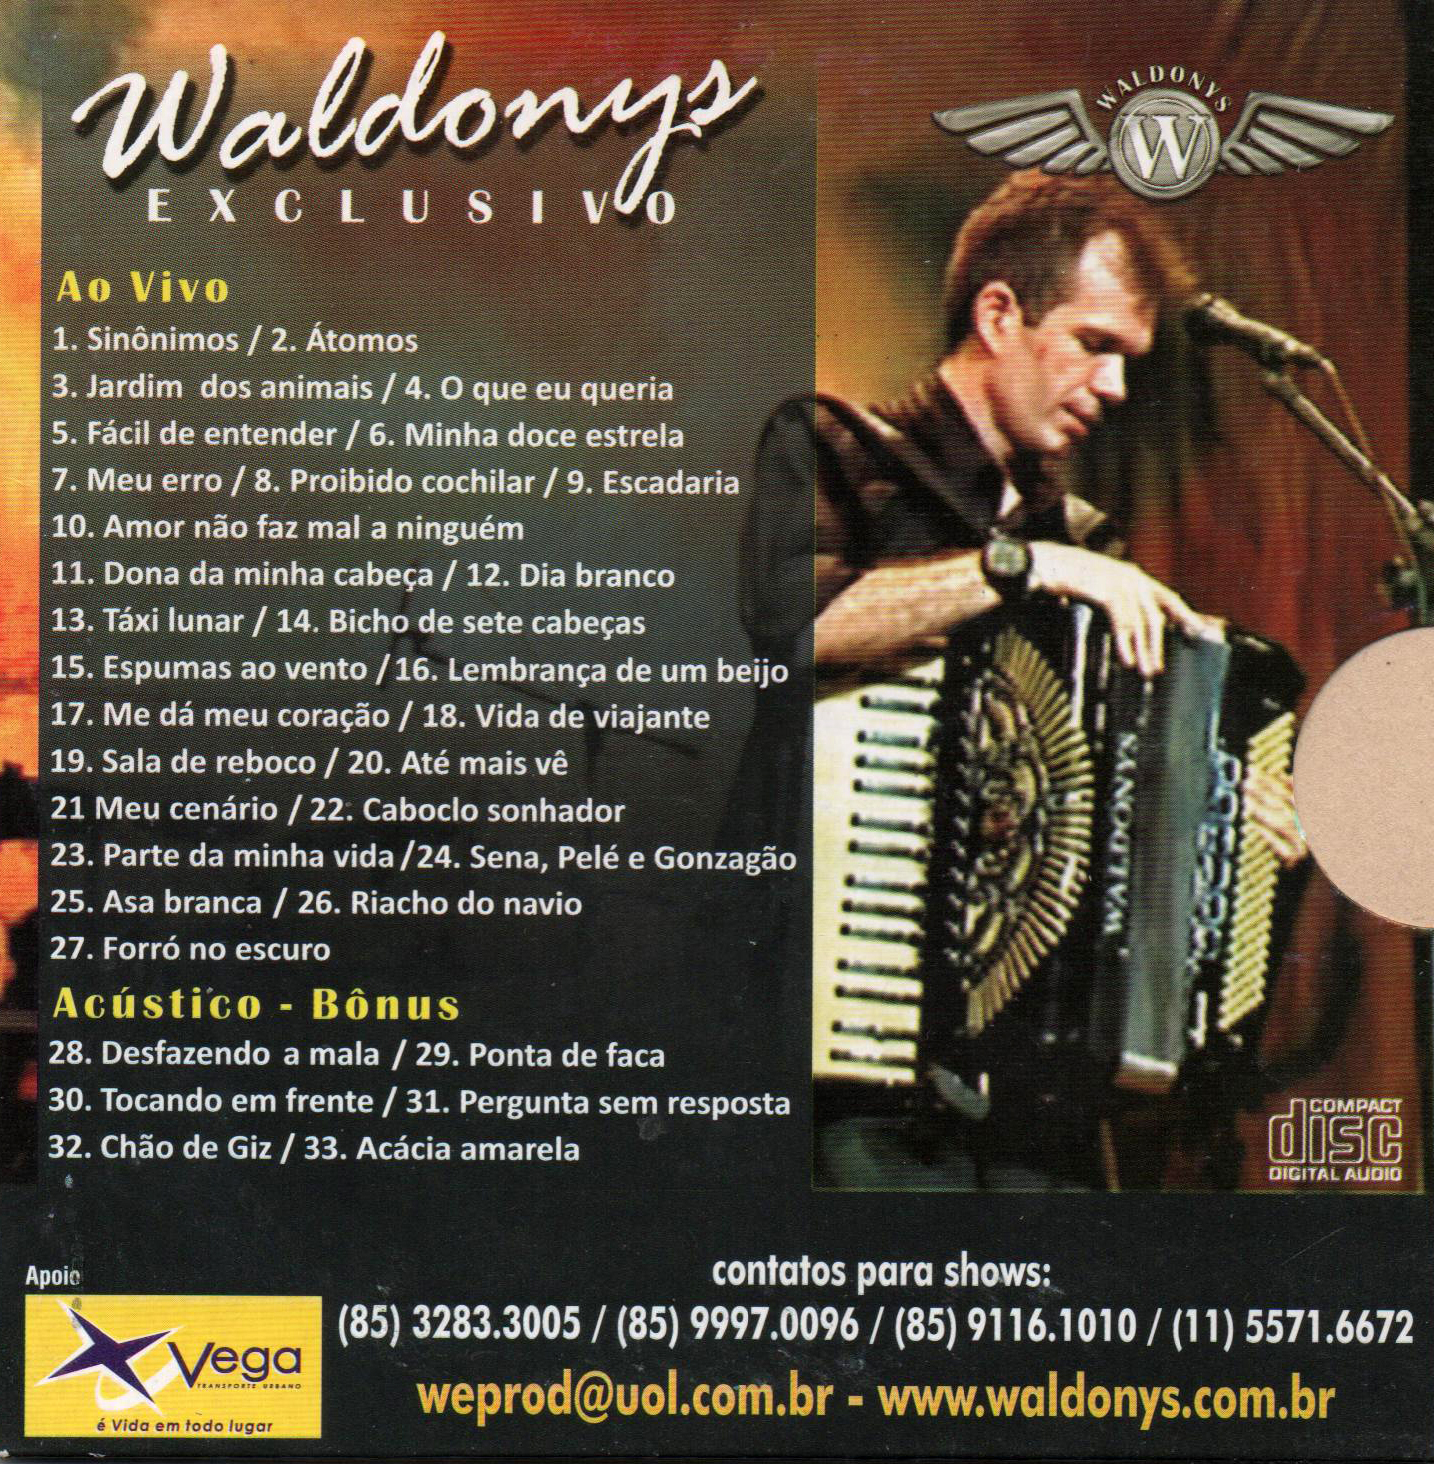 cd de waldonys ao vivo